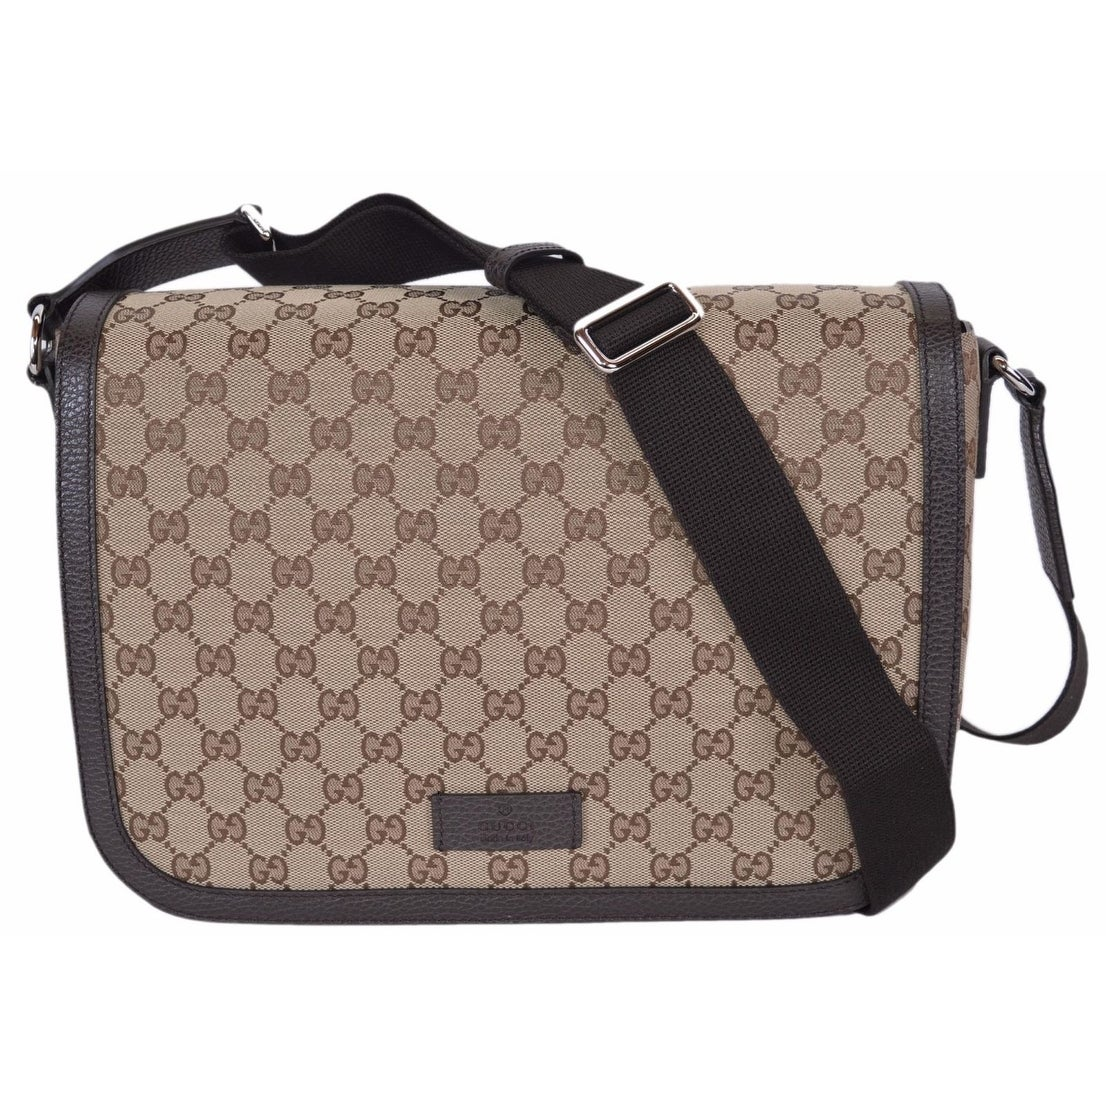 194d2932d38 ... Messenger Bag Purse Beige Brown. Gucci 449171 9886 Gg Guccissima Canvas  Large Crossbody